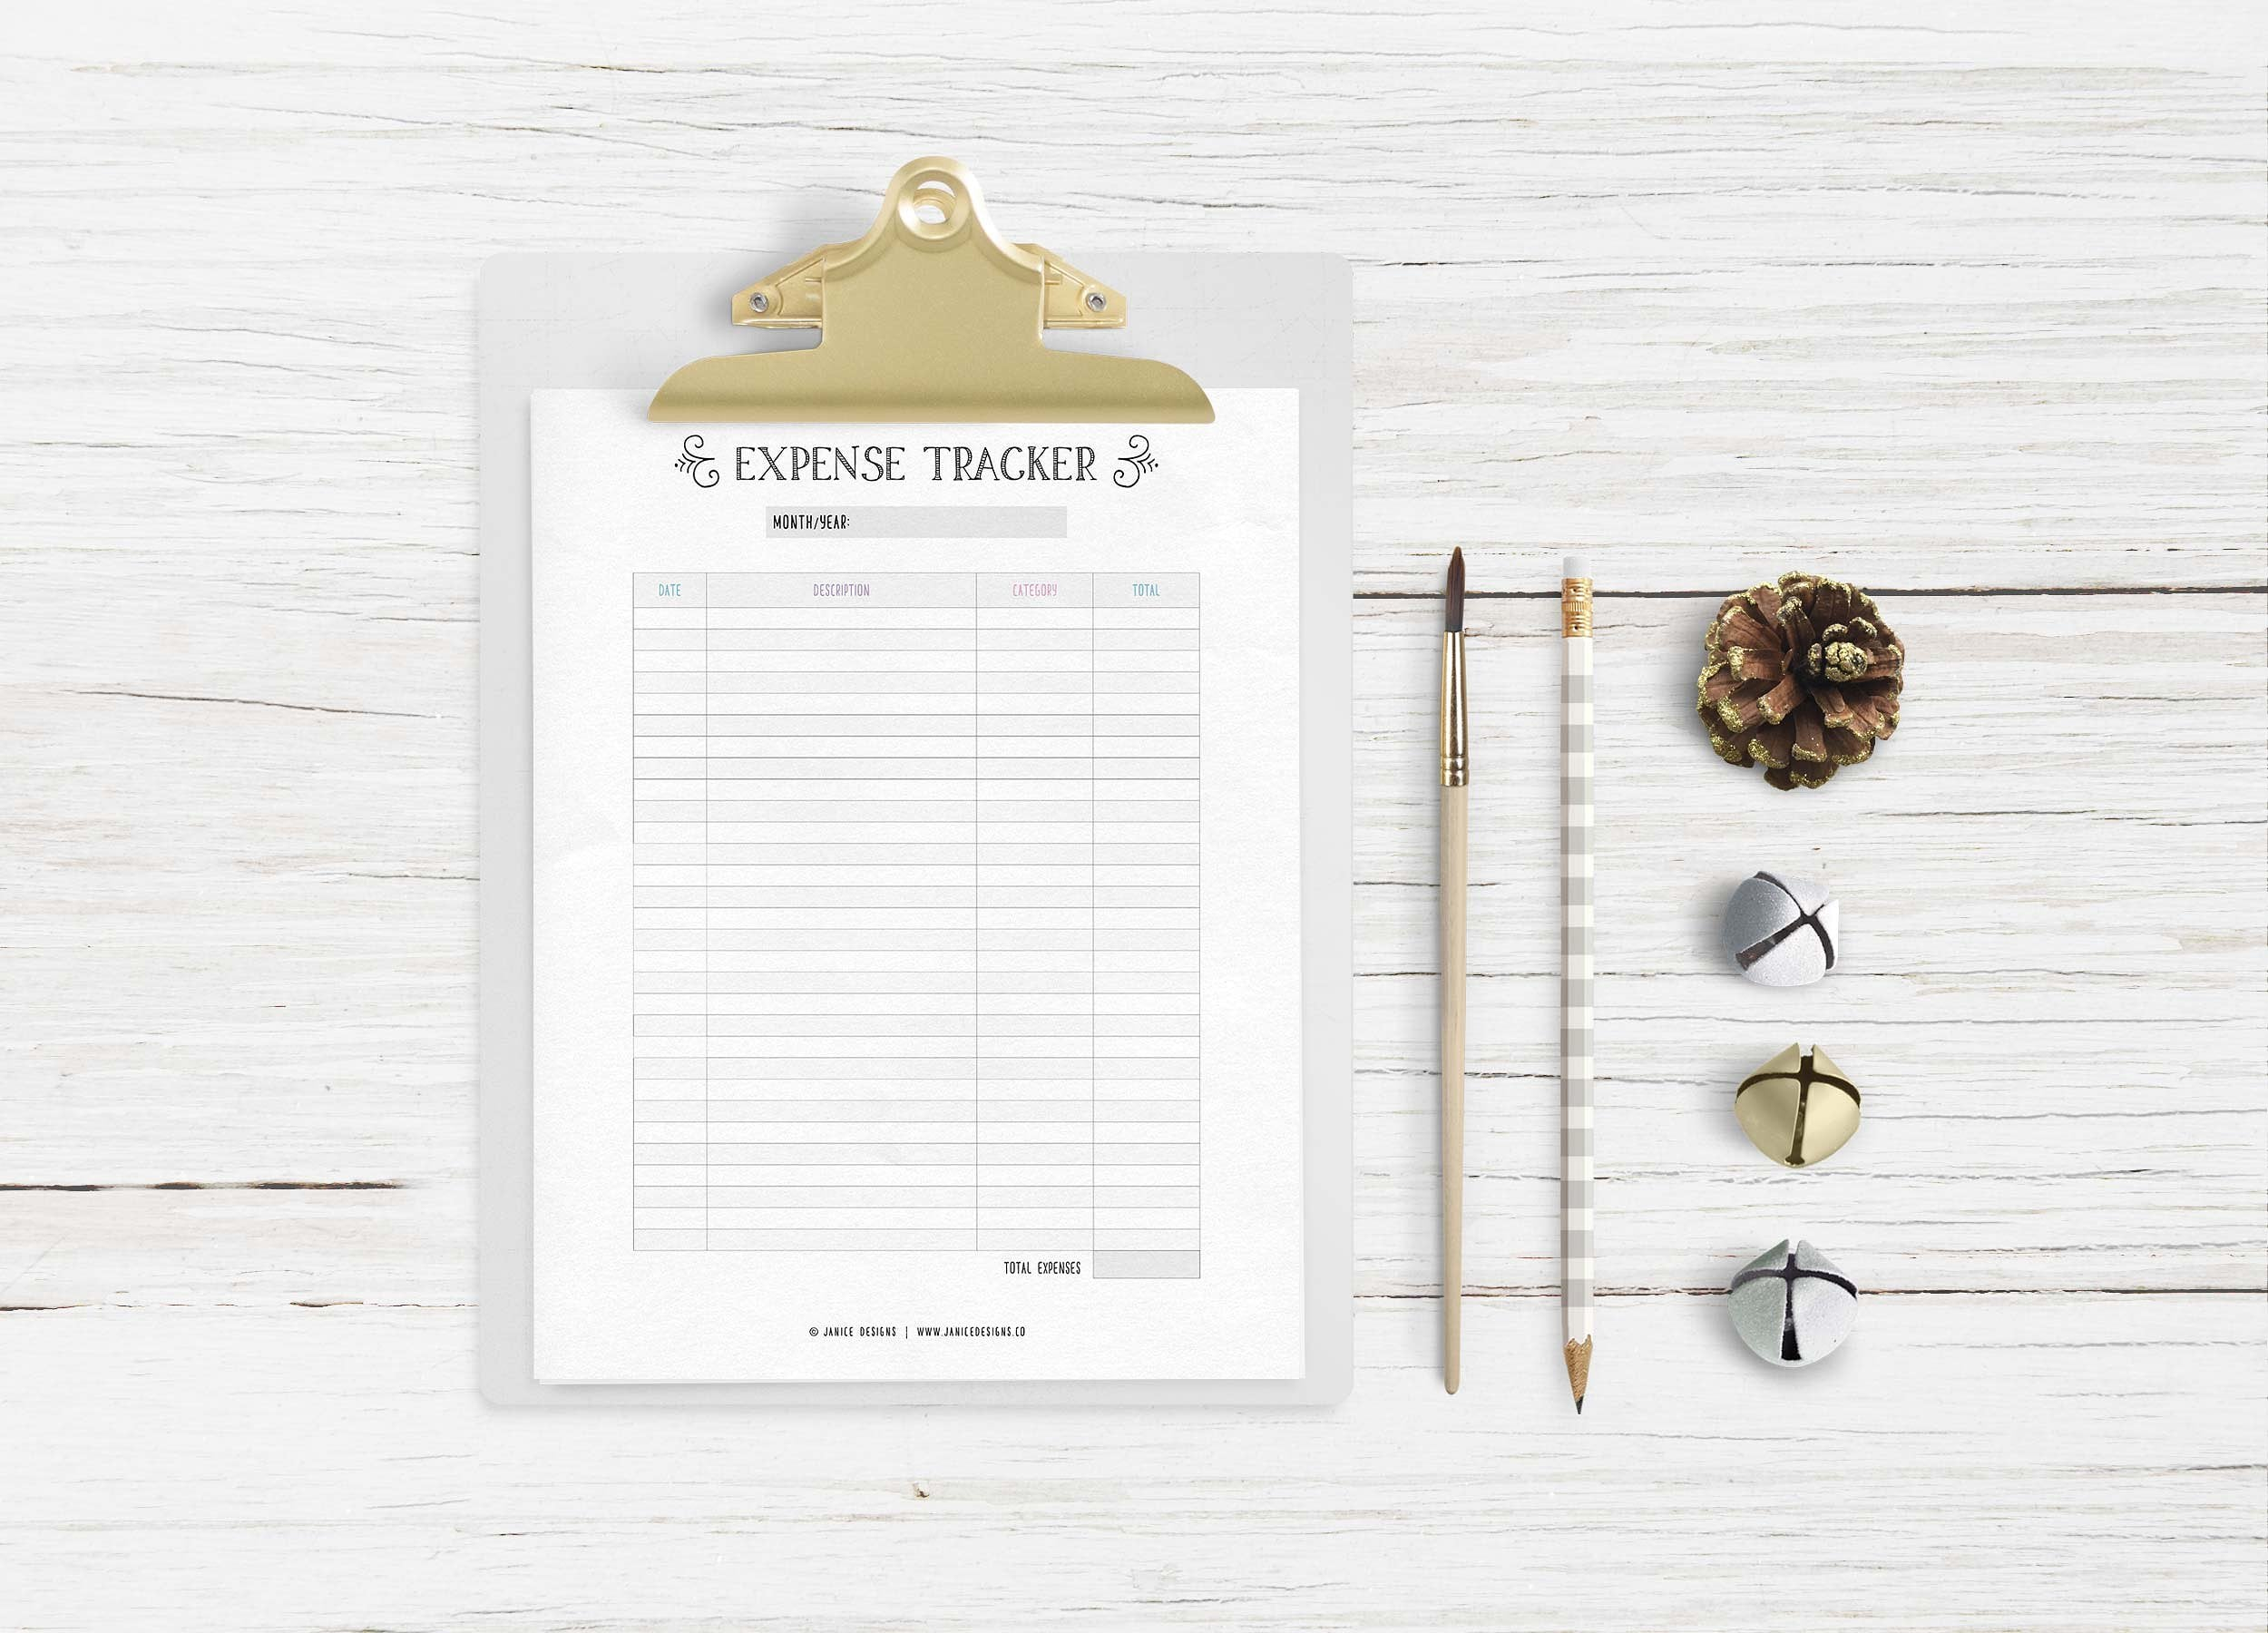 The Ultimate Inspiring Life Planner- 85+ Printable Pages $39 - expense tracker clipboard